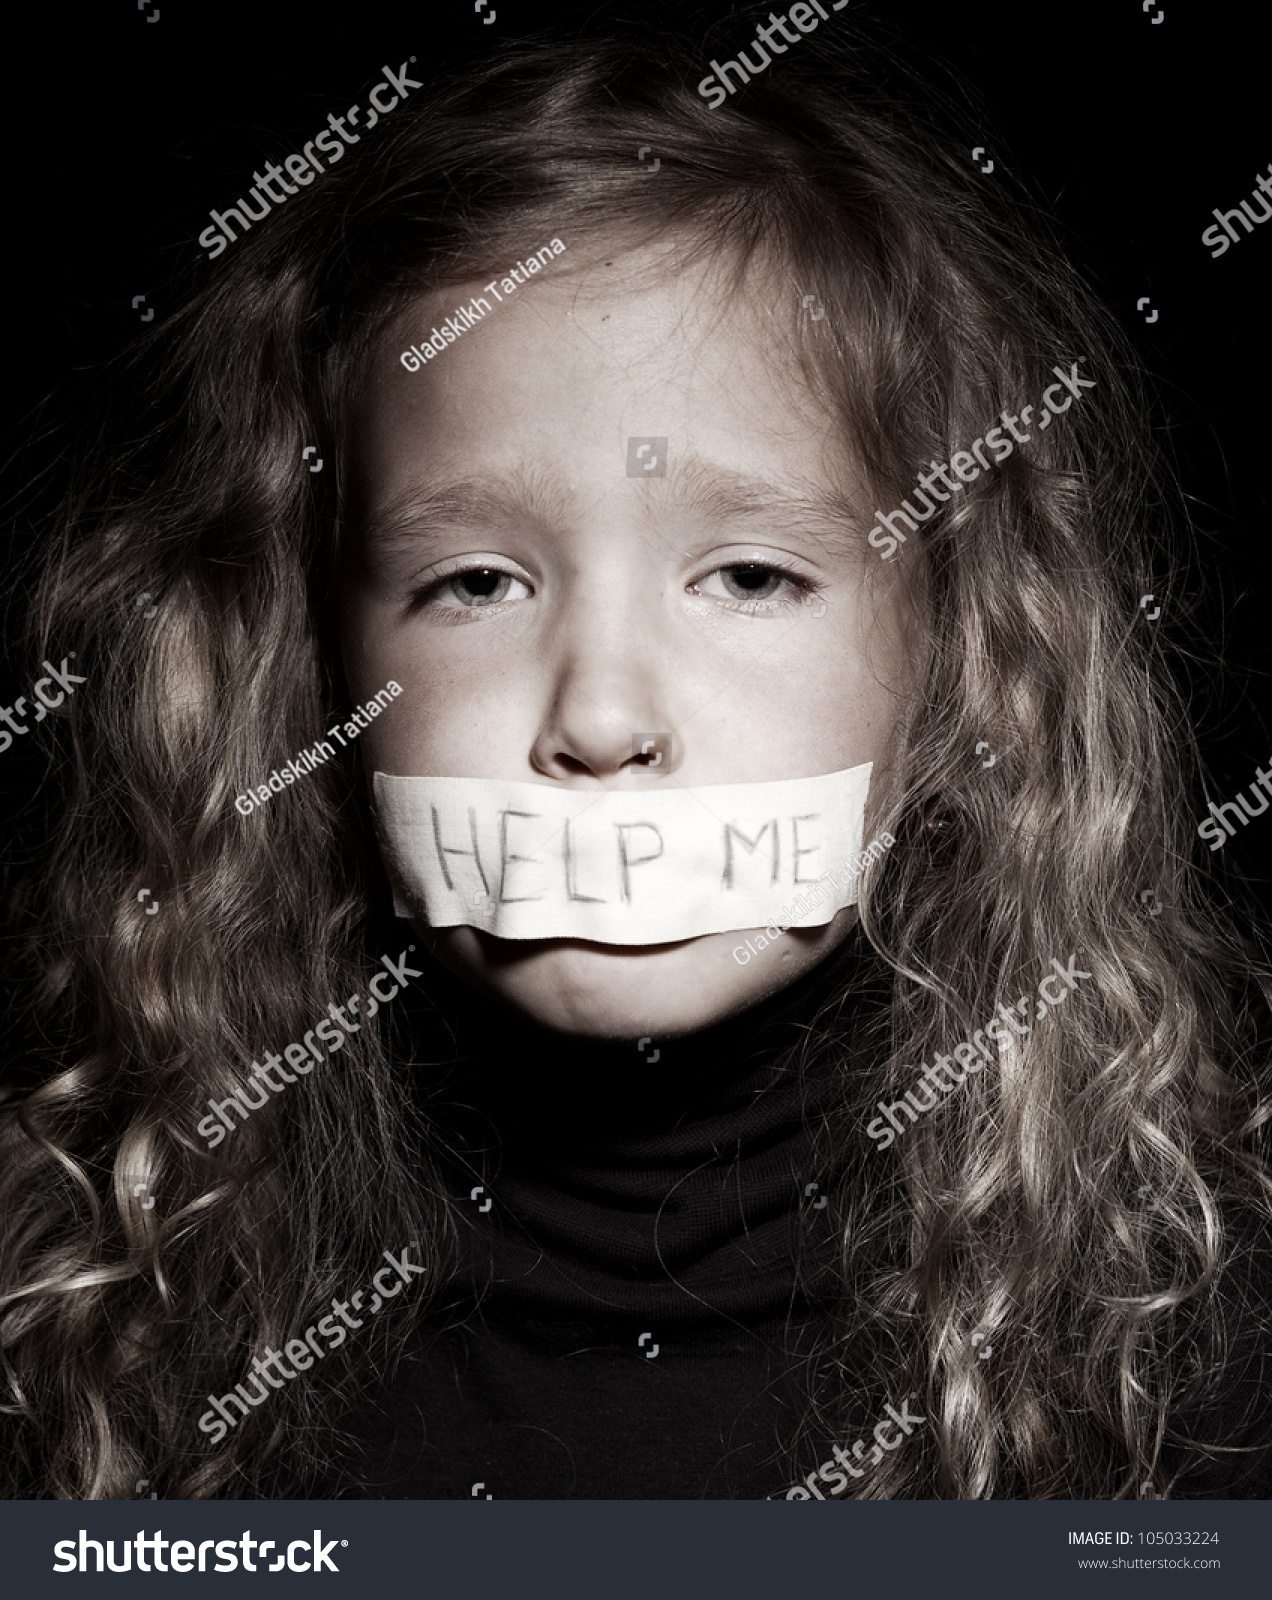 nudist child girls Little child with taped mouth, begging for help. Sad, abuse girl. Violence